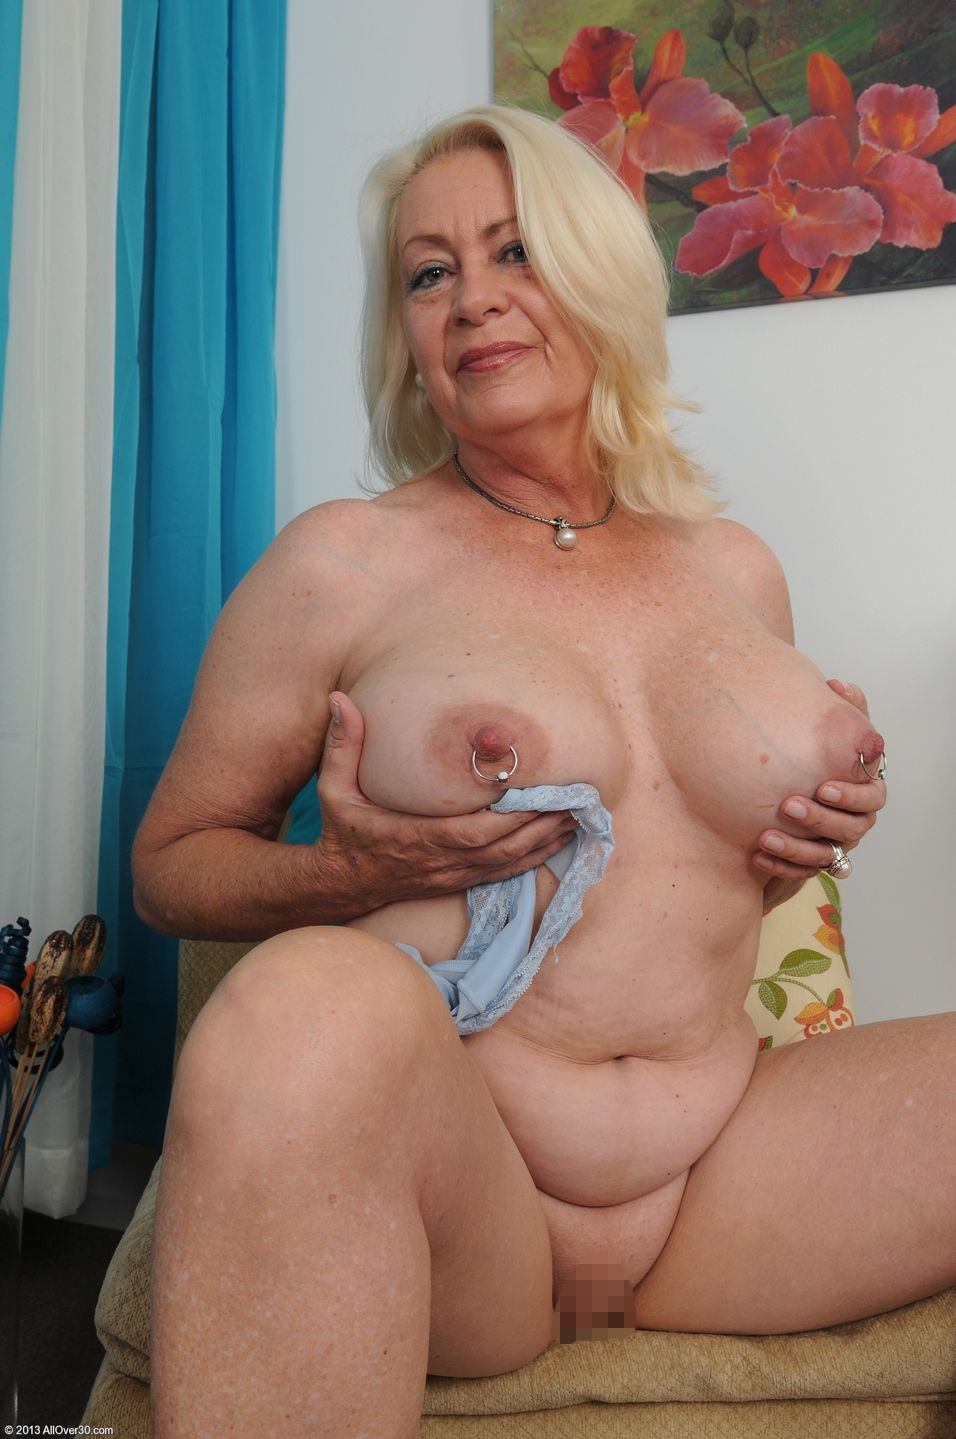 High qiality grannyporn sex picture